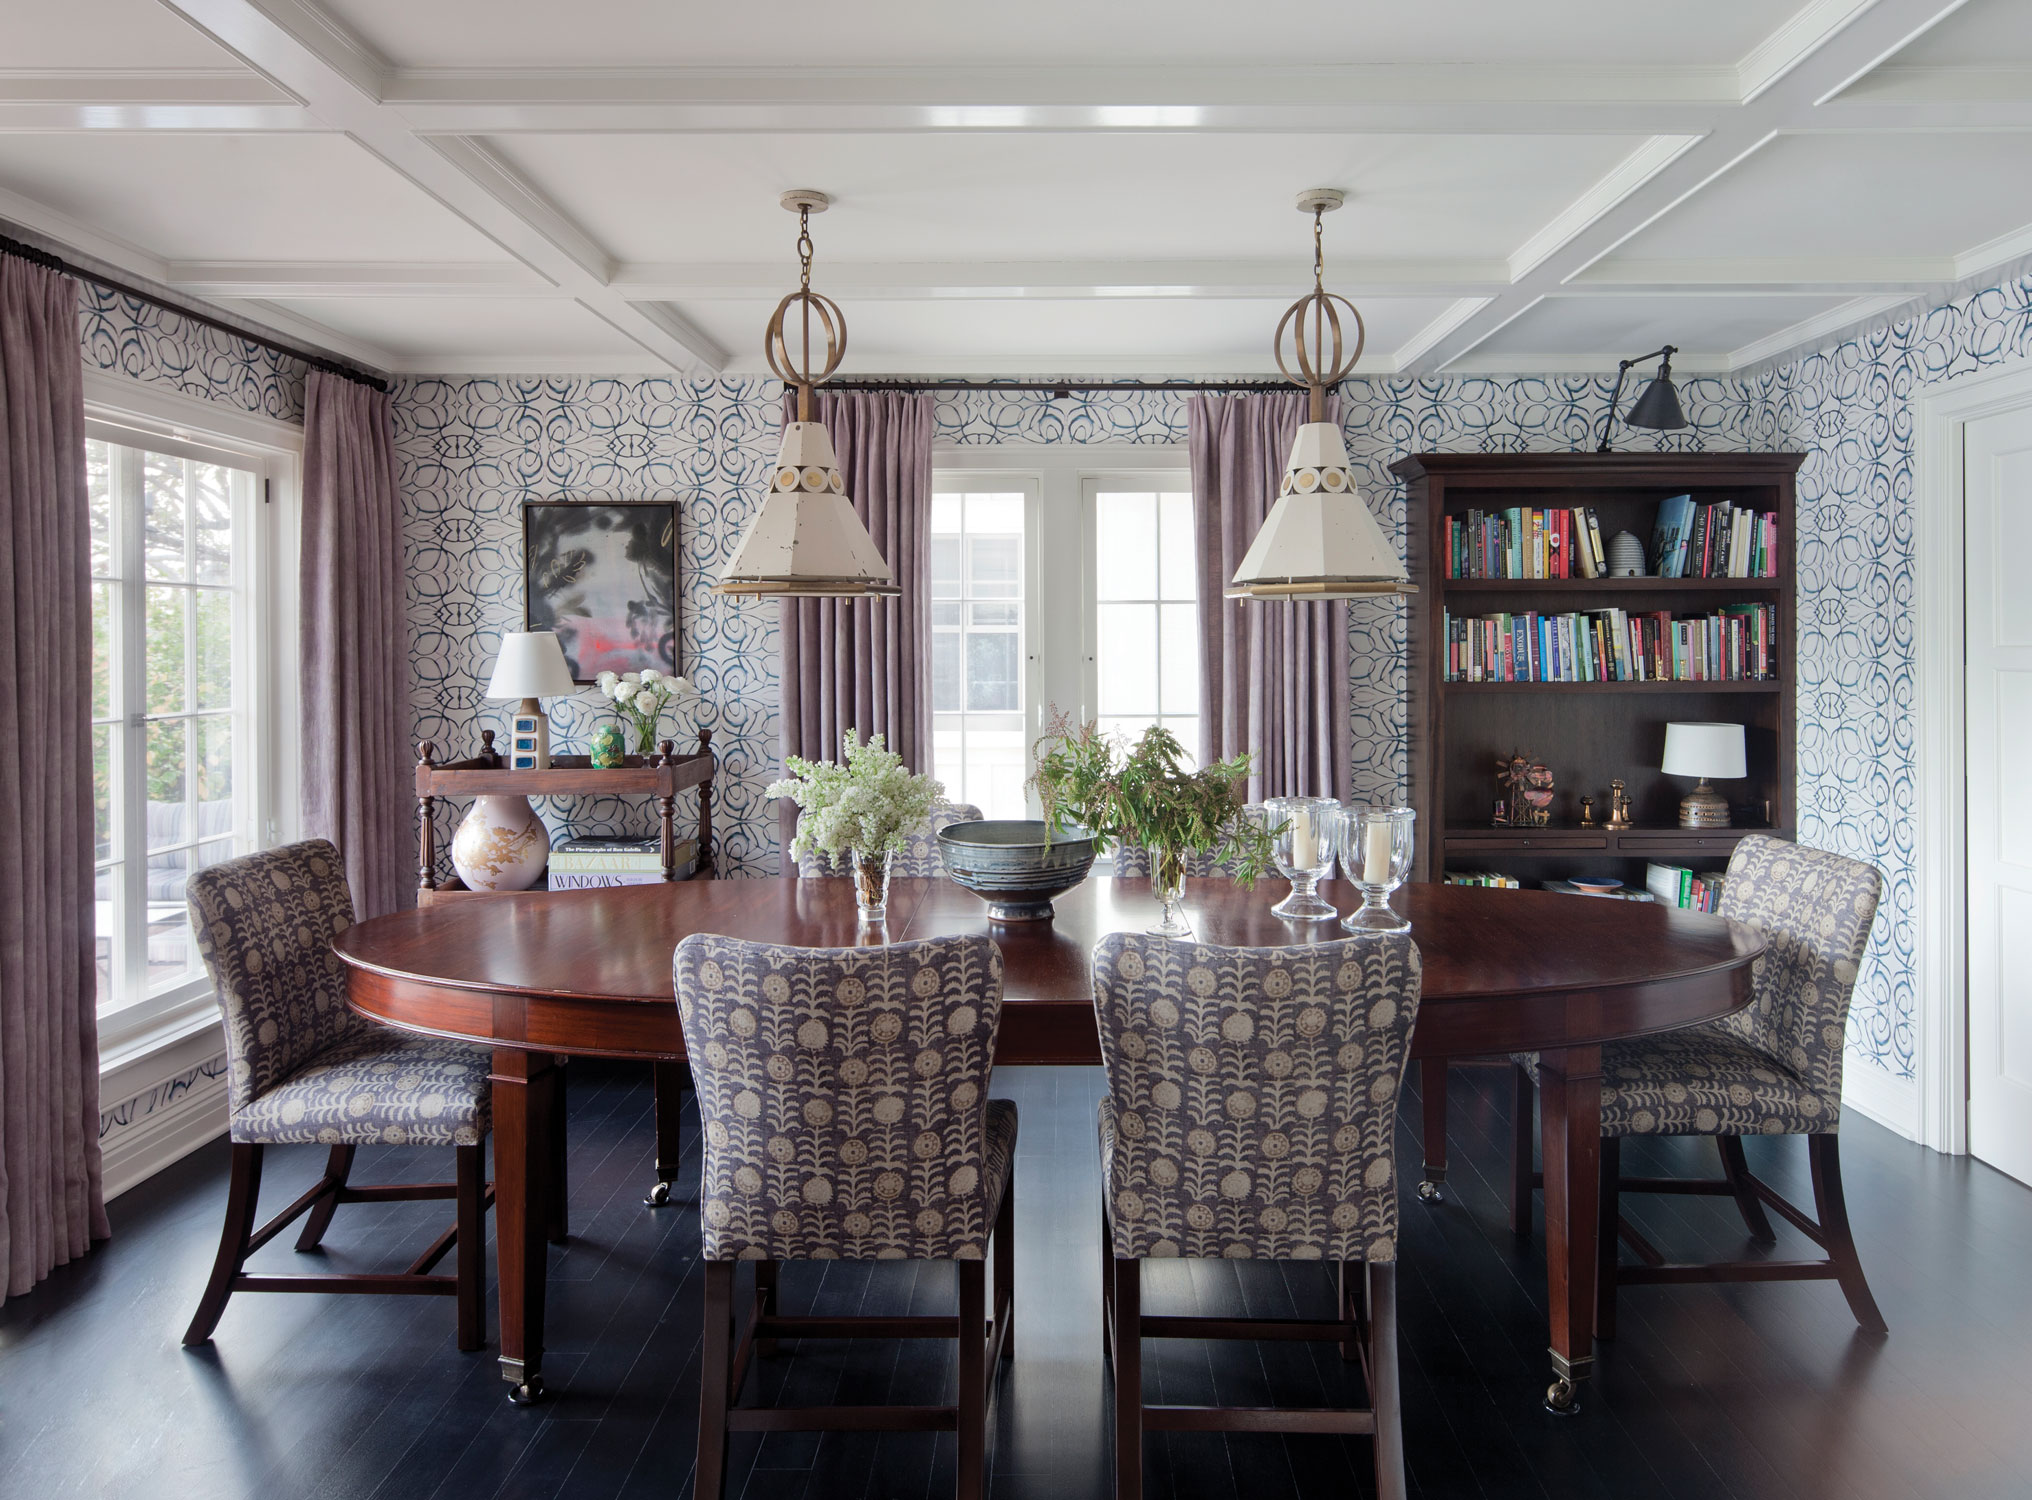 Dining room with coffered ceiling by Tim Barber Ltd.